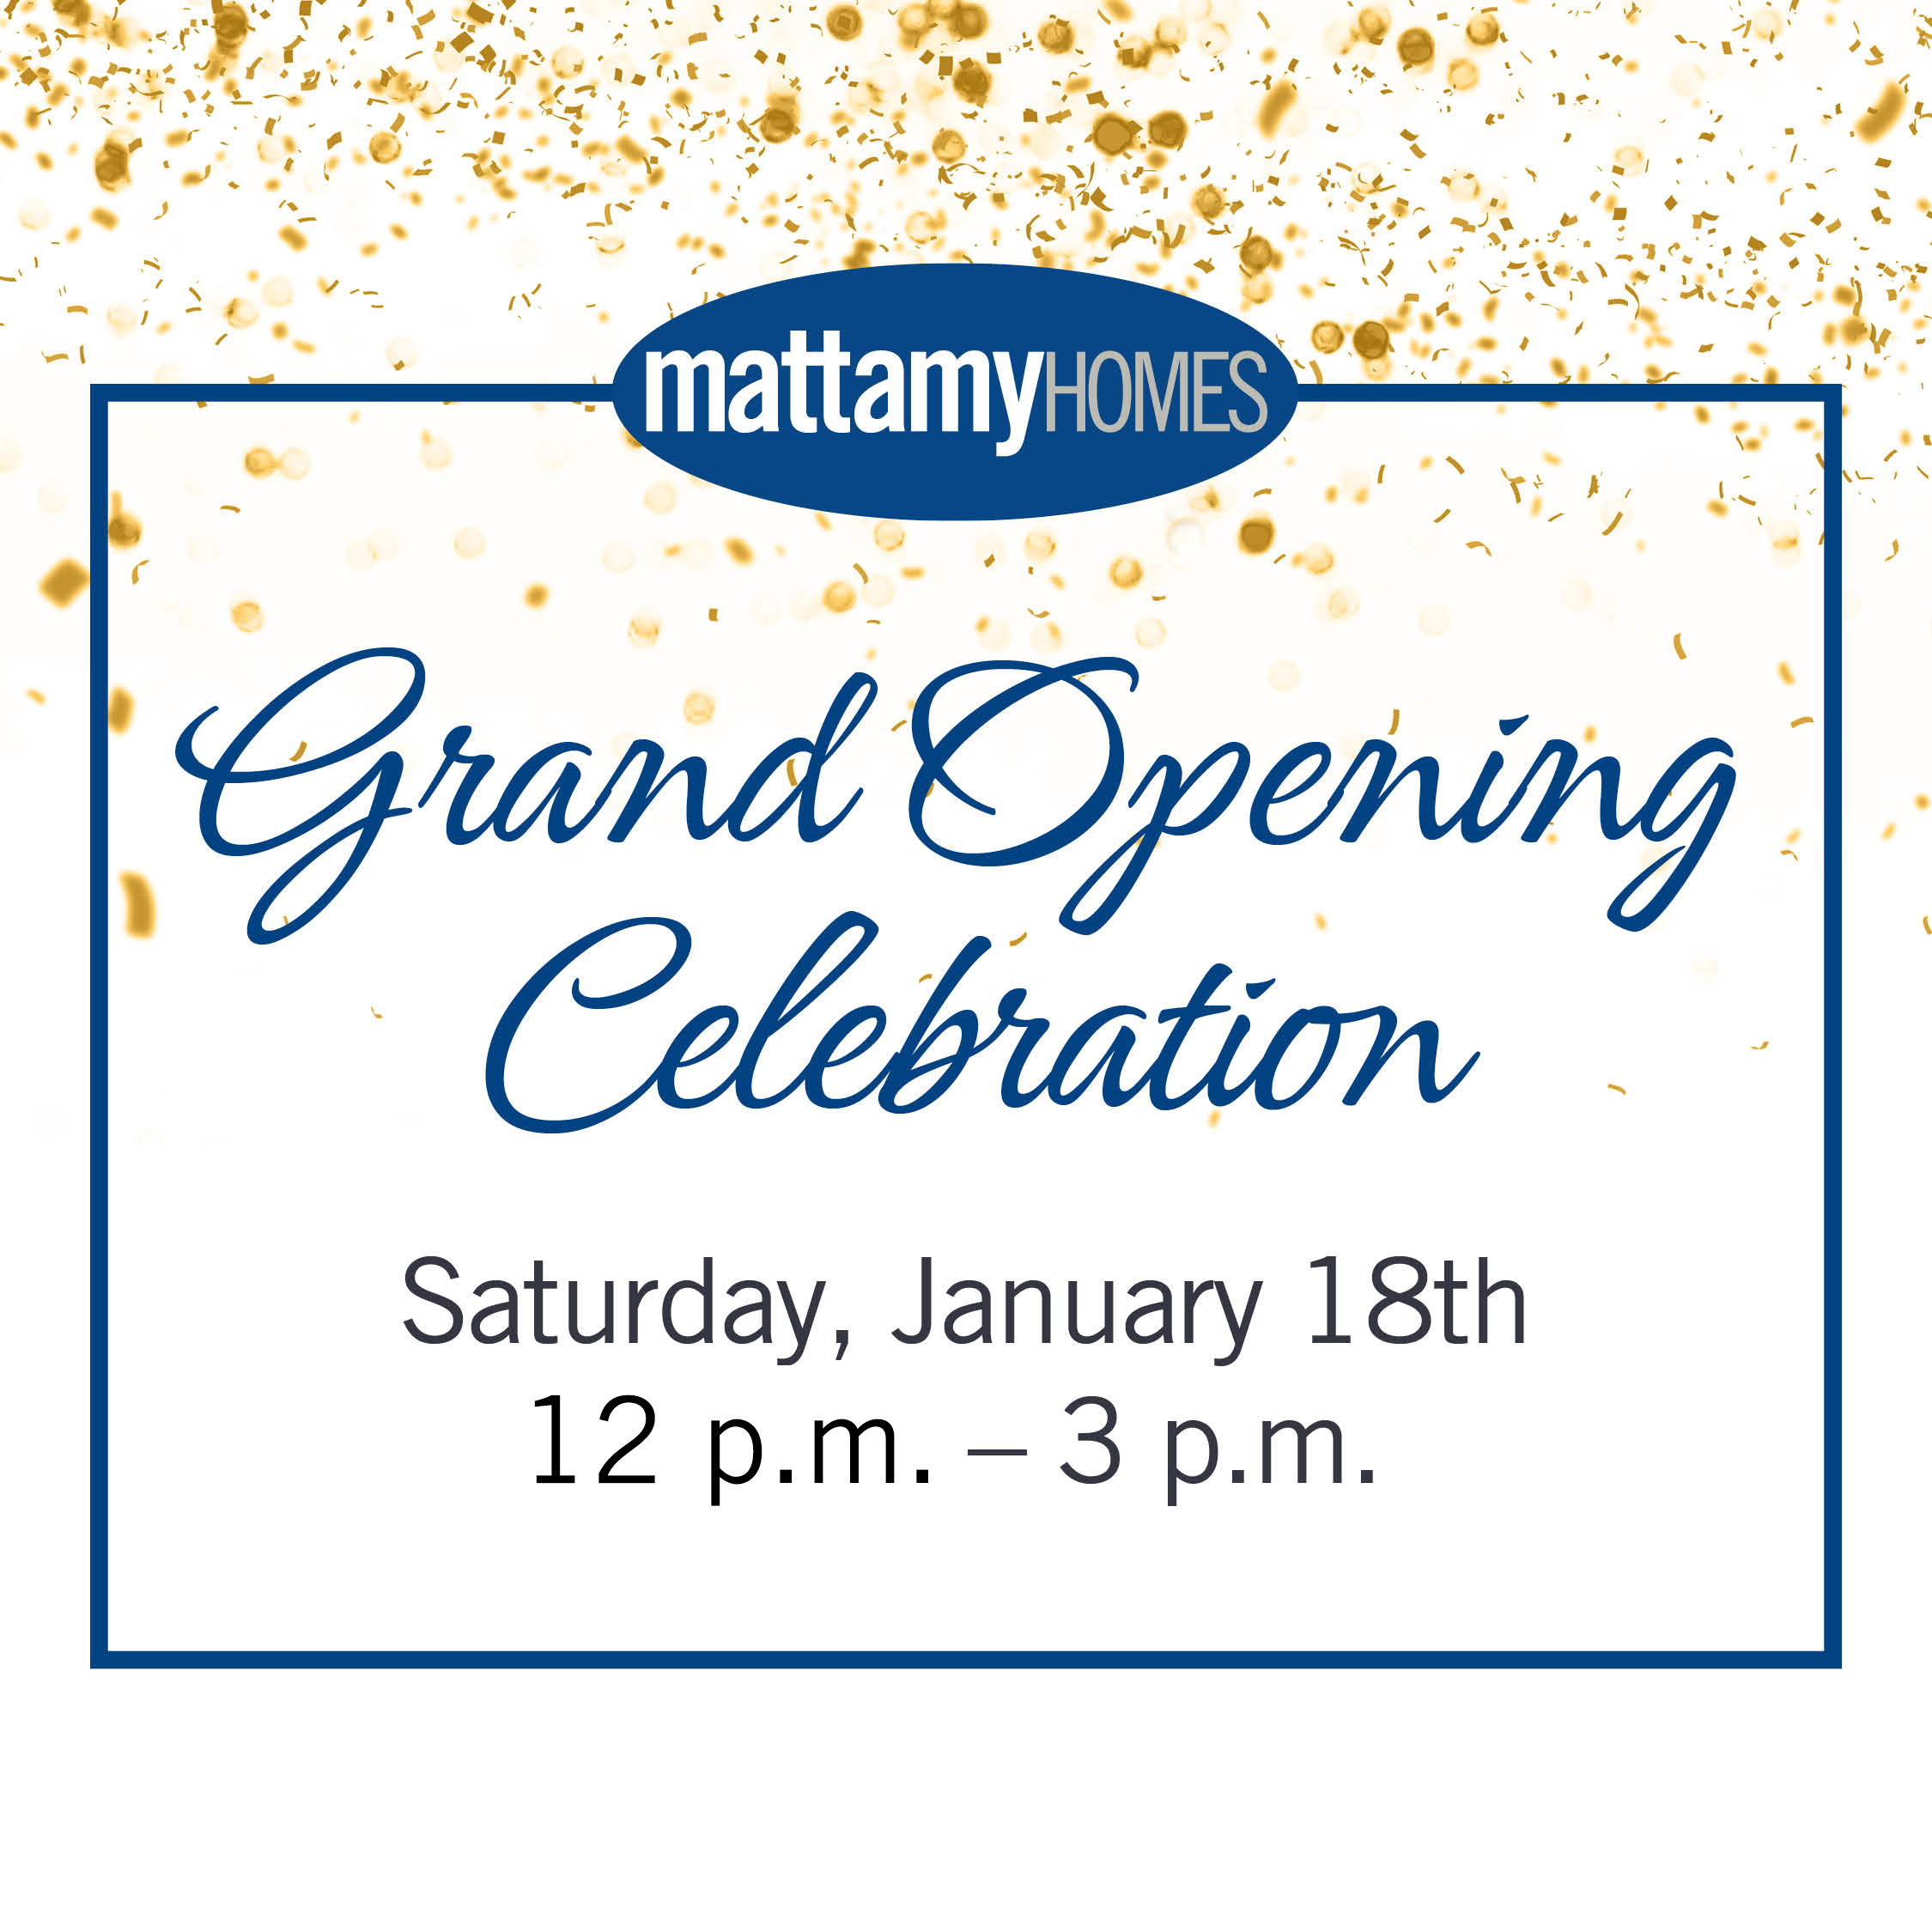 Lakewood Ranch Apartments: Mattamy Homes Grand Opening Celebration